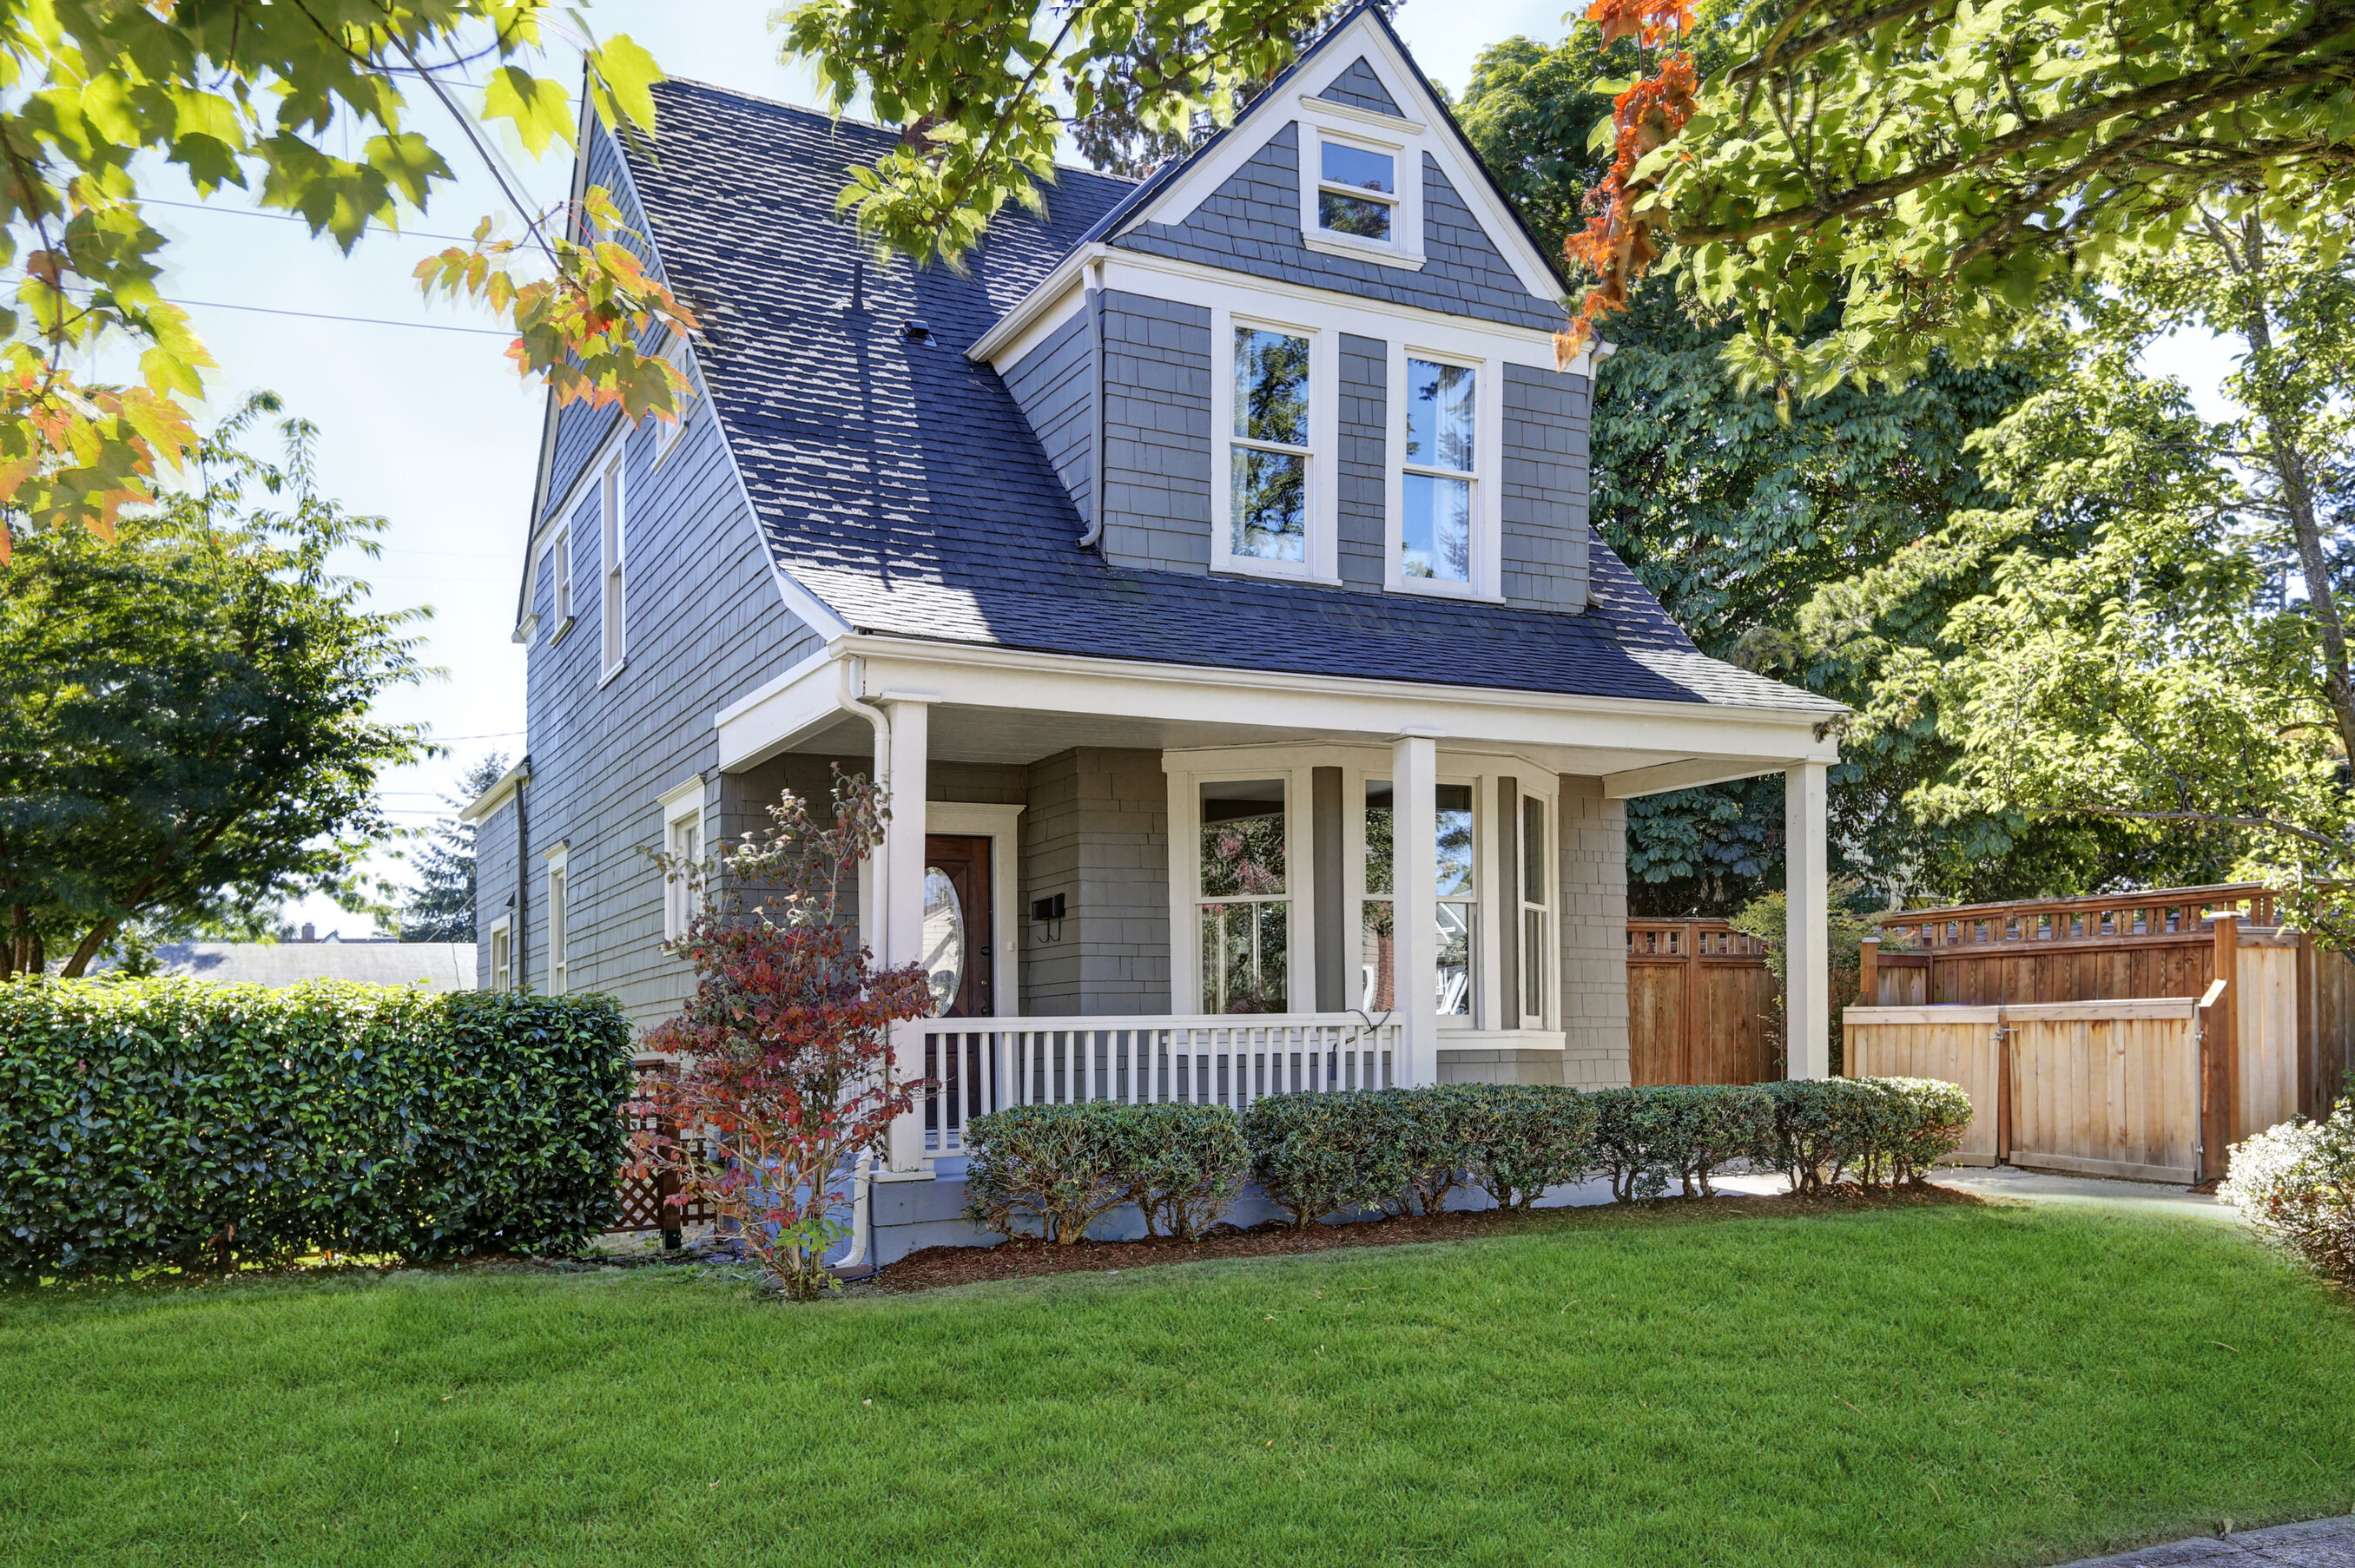 A grey-blue home with a large front porch, large green front yard, and several green shrubs.